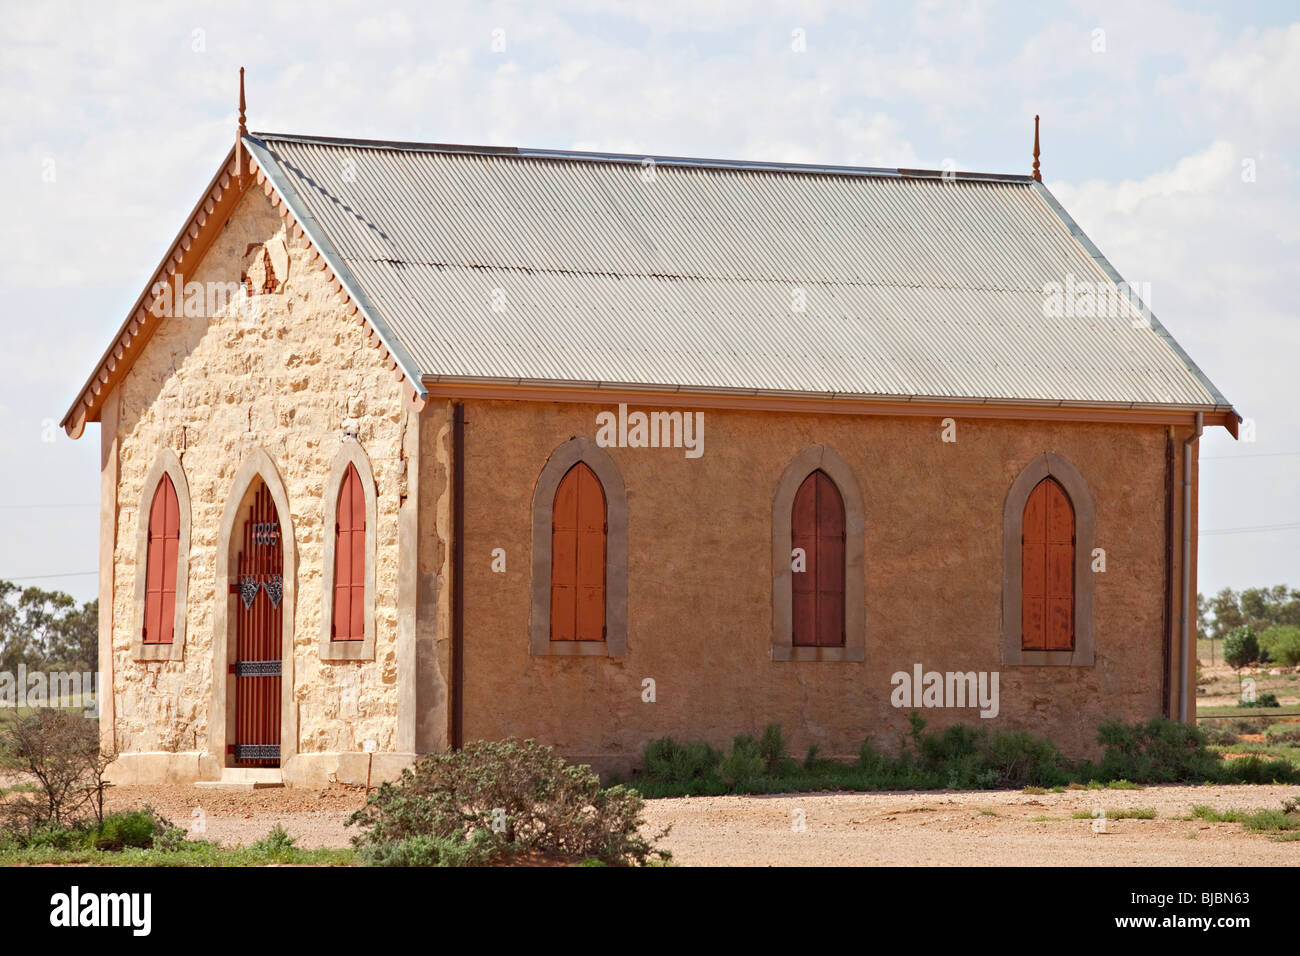 Methodist church, Silverton near Broken Hill, Outback Australia NSW Stock Photo